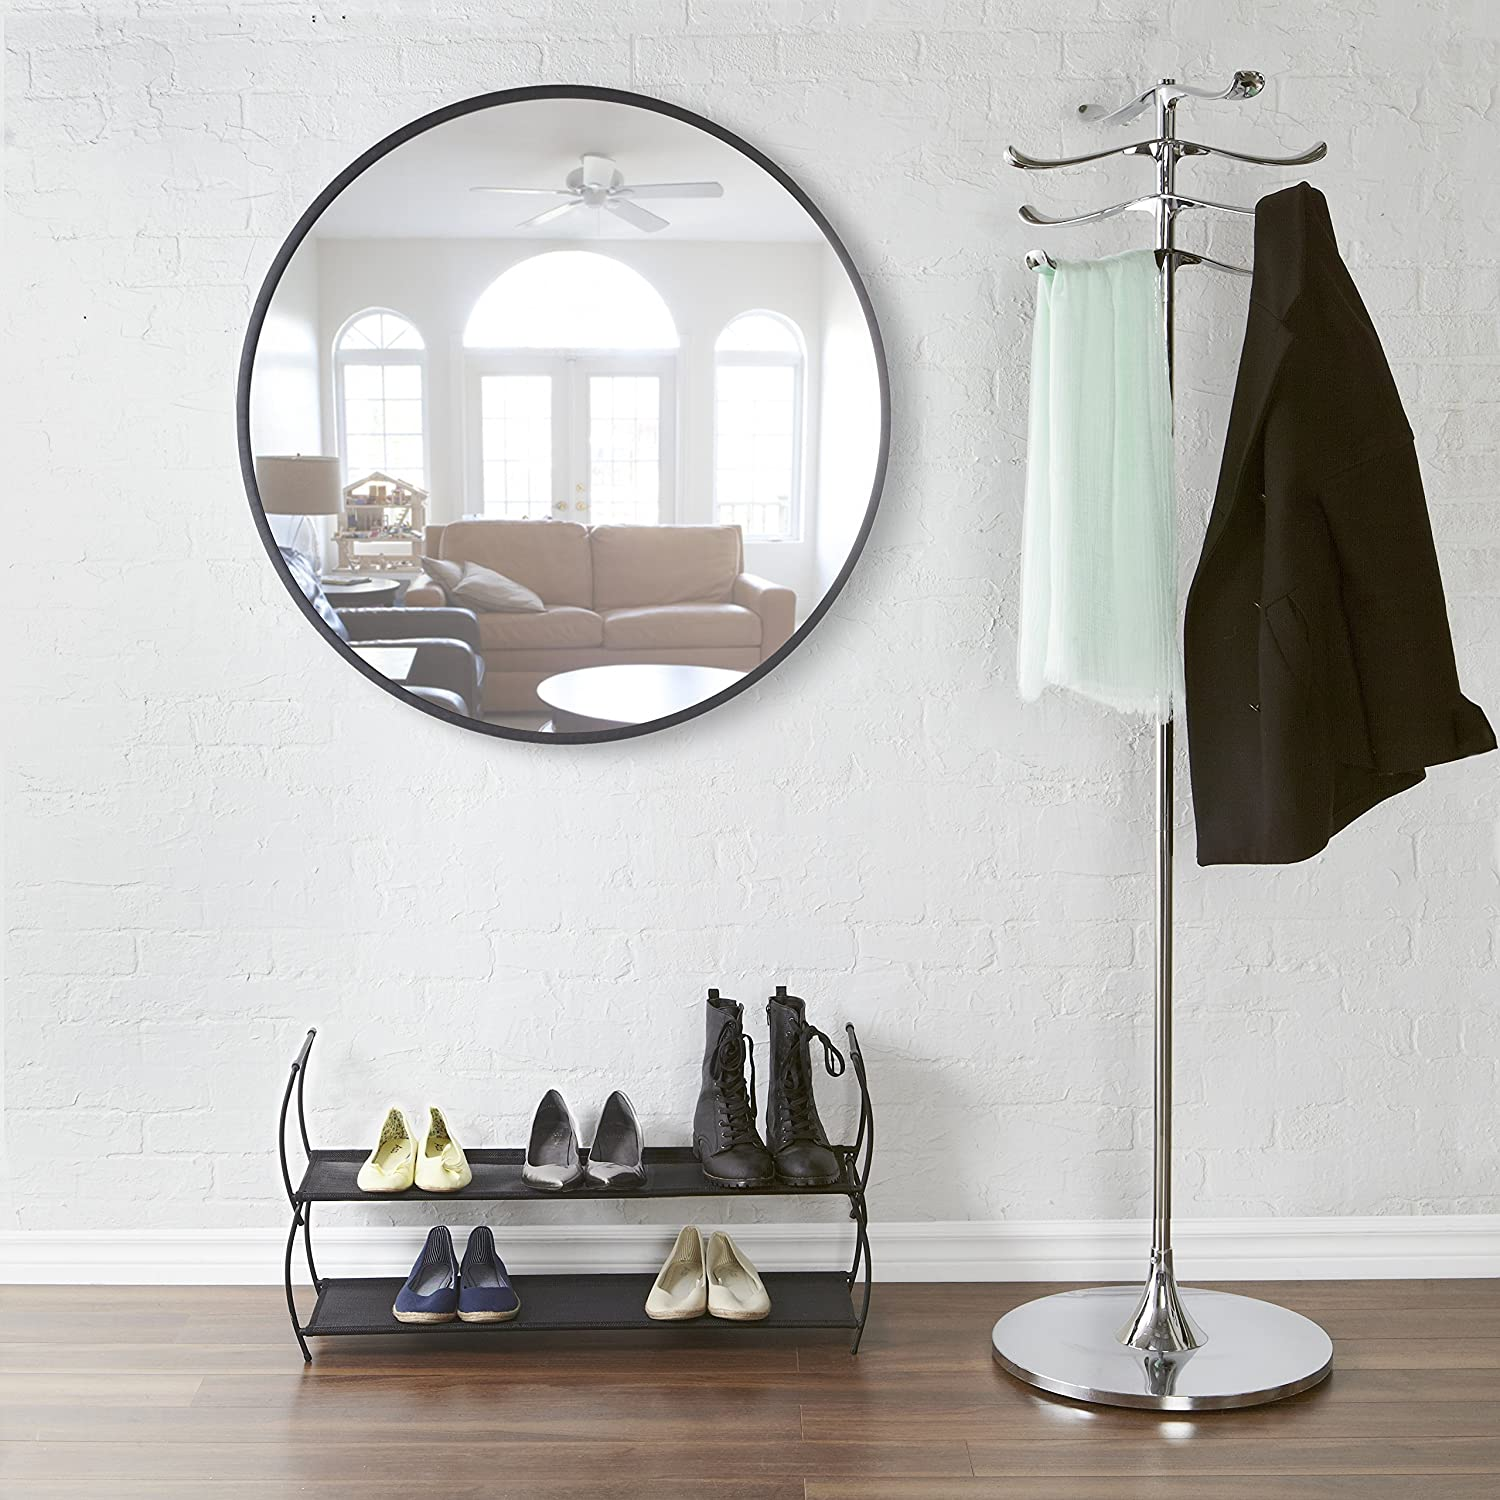 The 5 Best Wall Mirrors In All Shapes And Sizes: 2020 Buying Guide 2